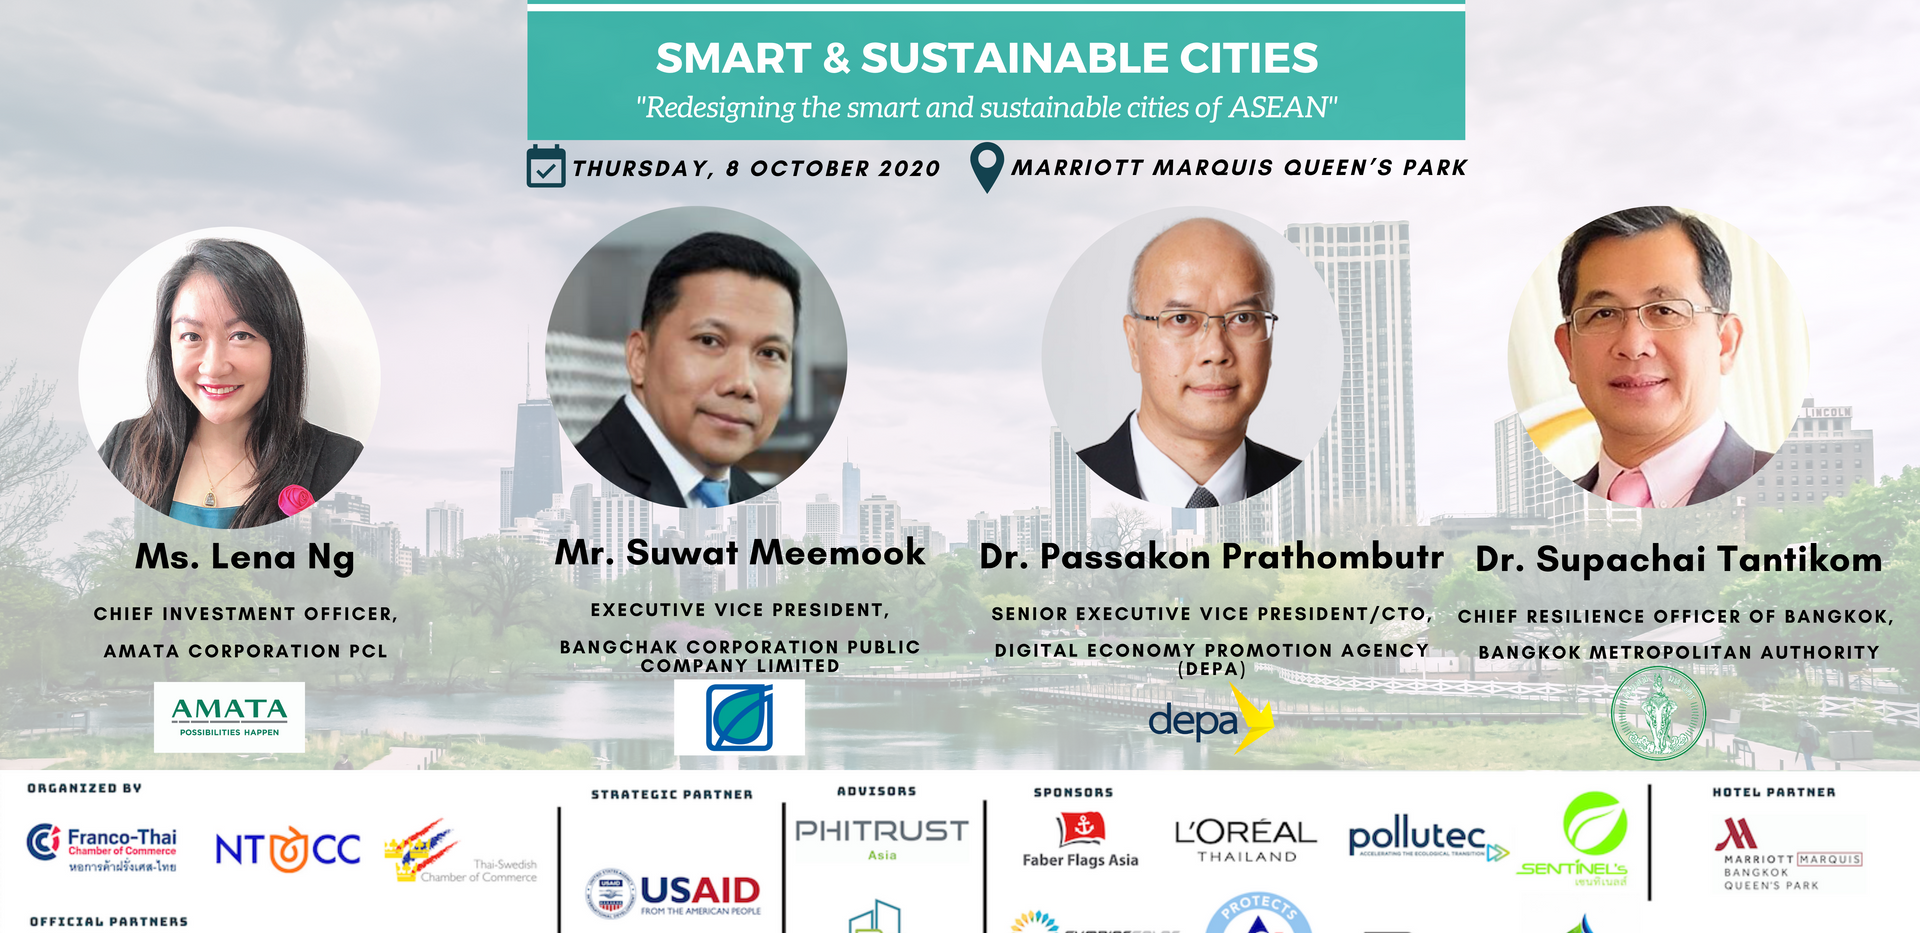 Redesigning cities in ASEAN